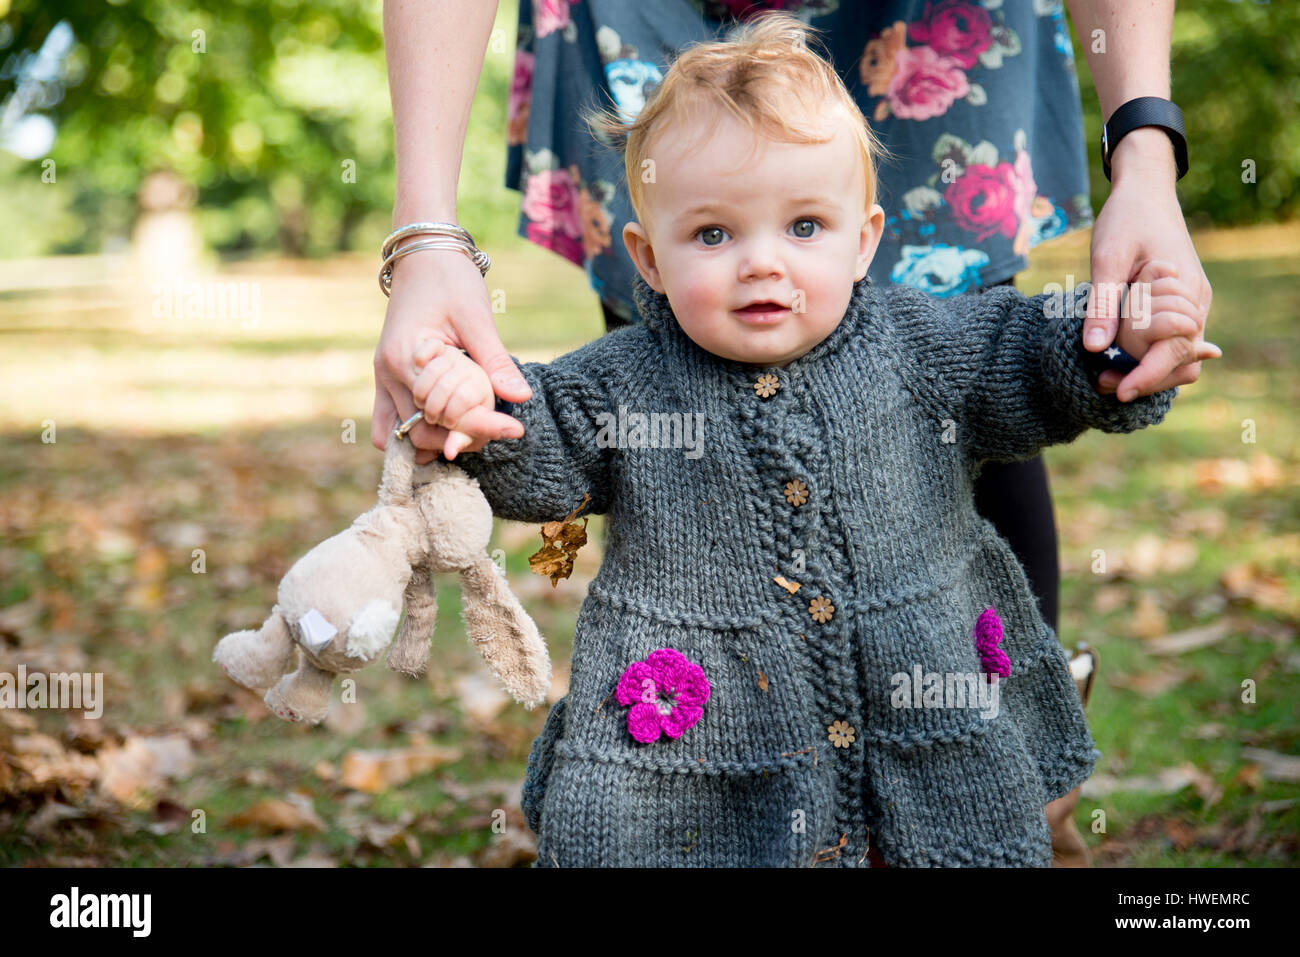 Portrait of baby girl holding mother's hands and toddling in park - Stock Image